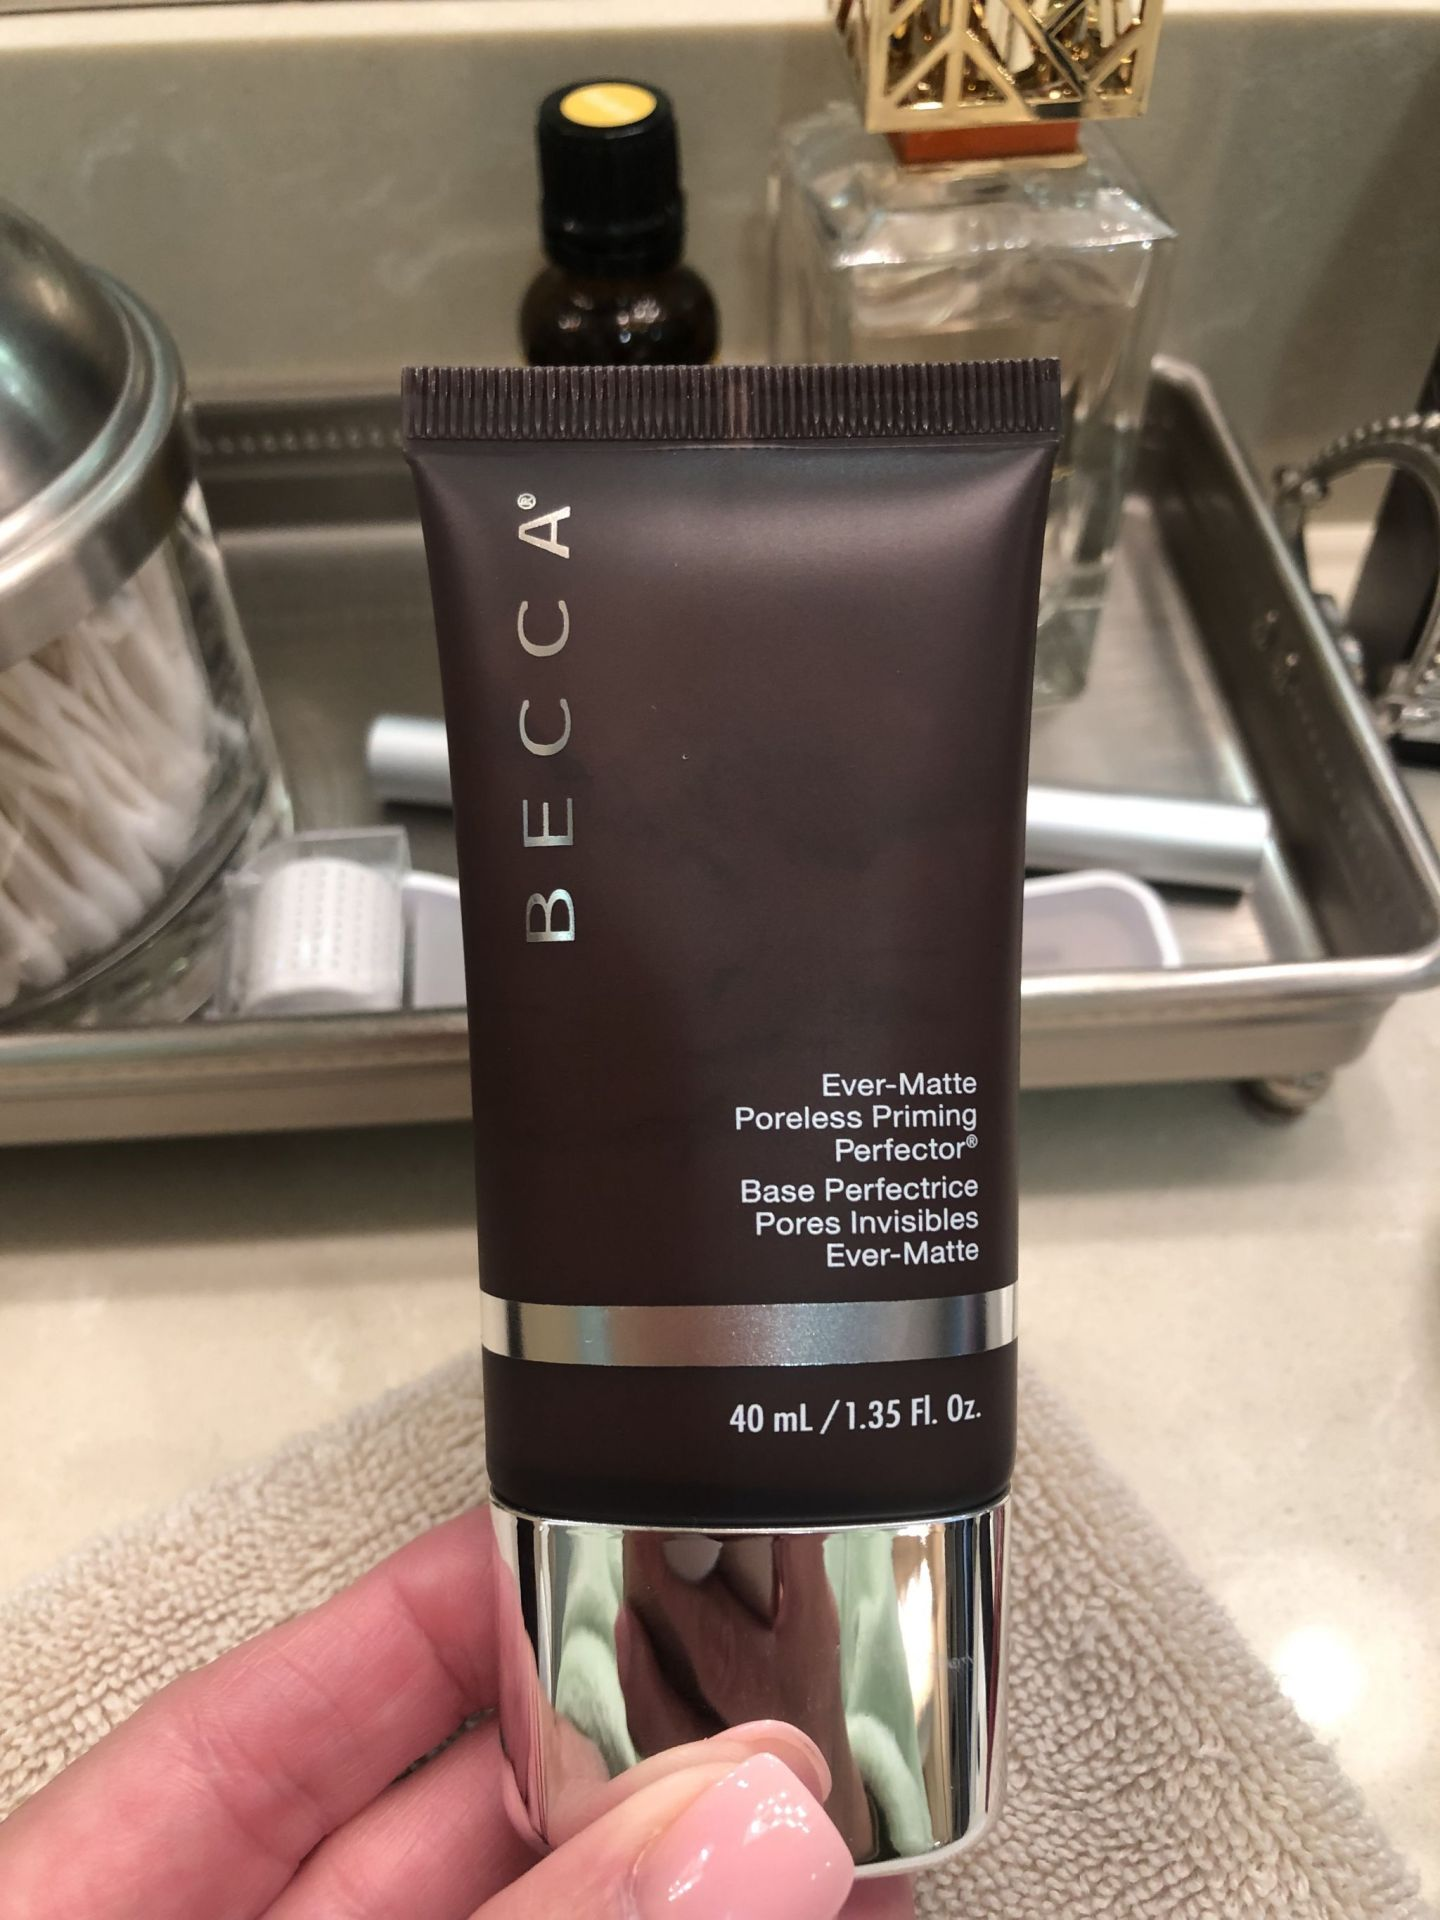 Becca Ever-Matte Poreless Priming Perfector, Coast to Coast